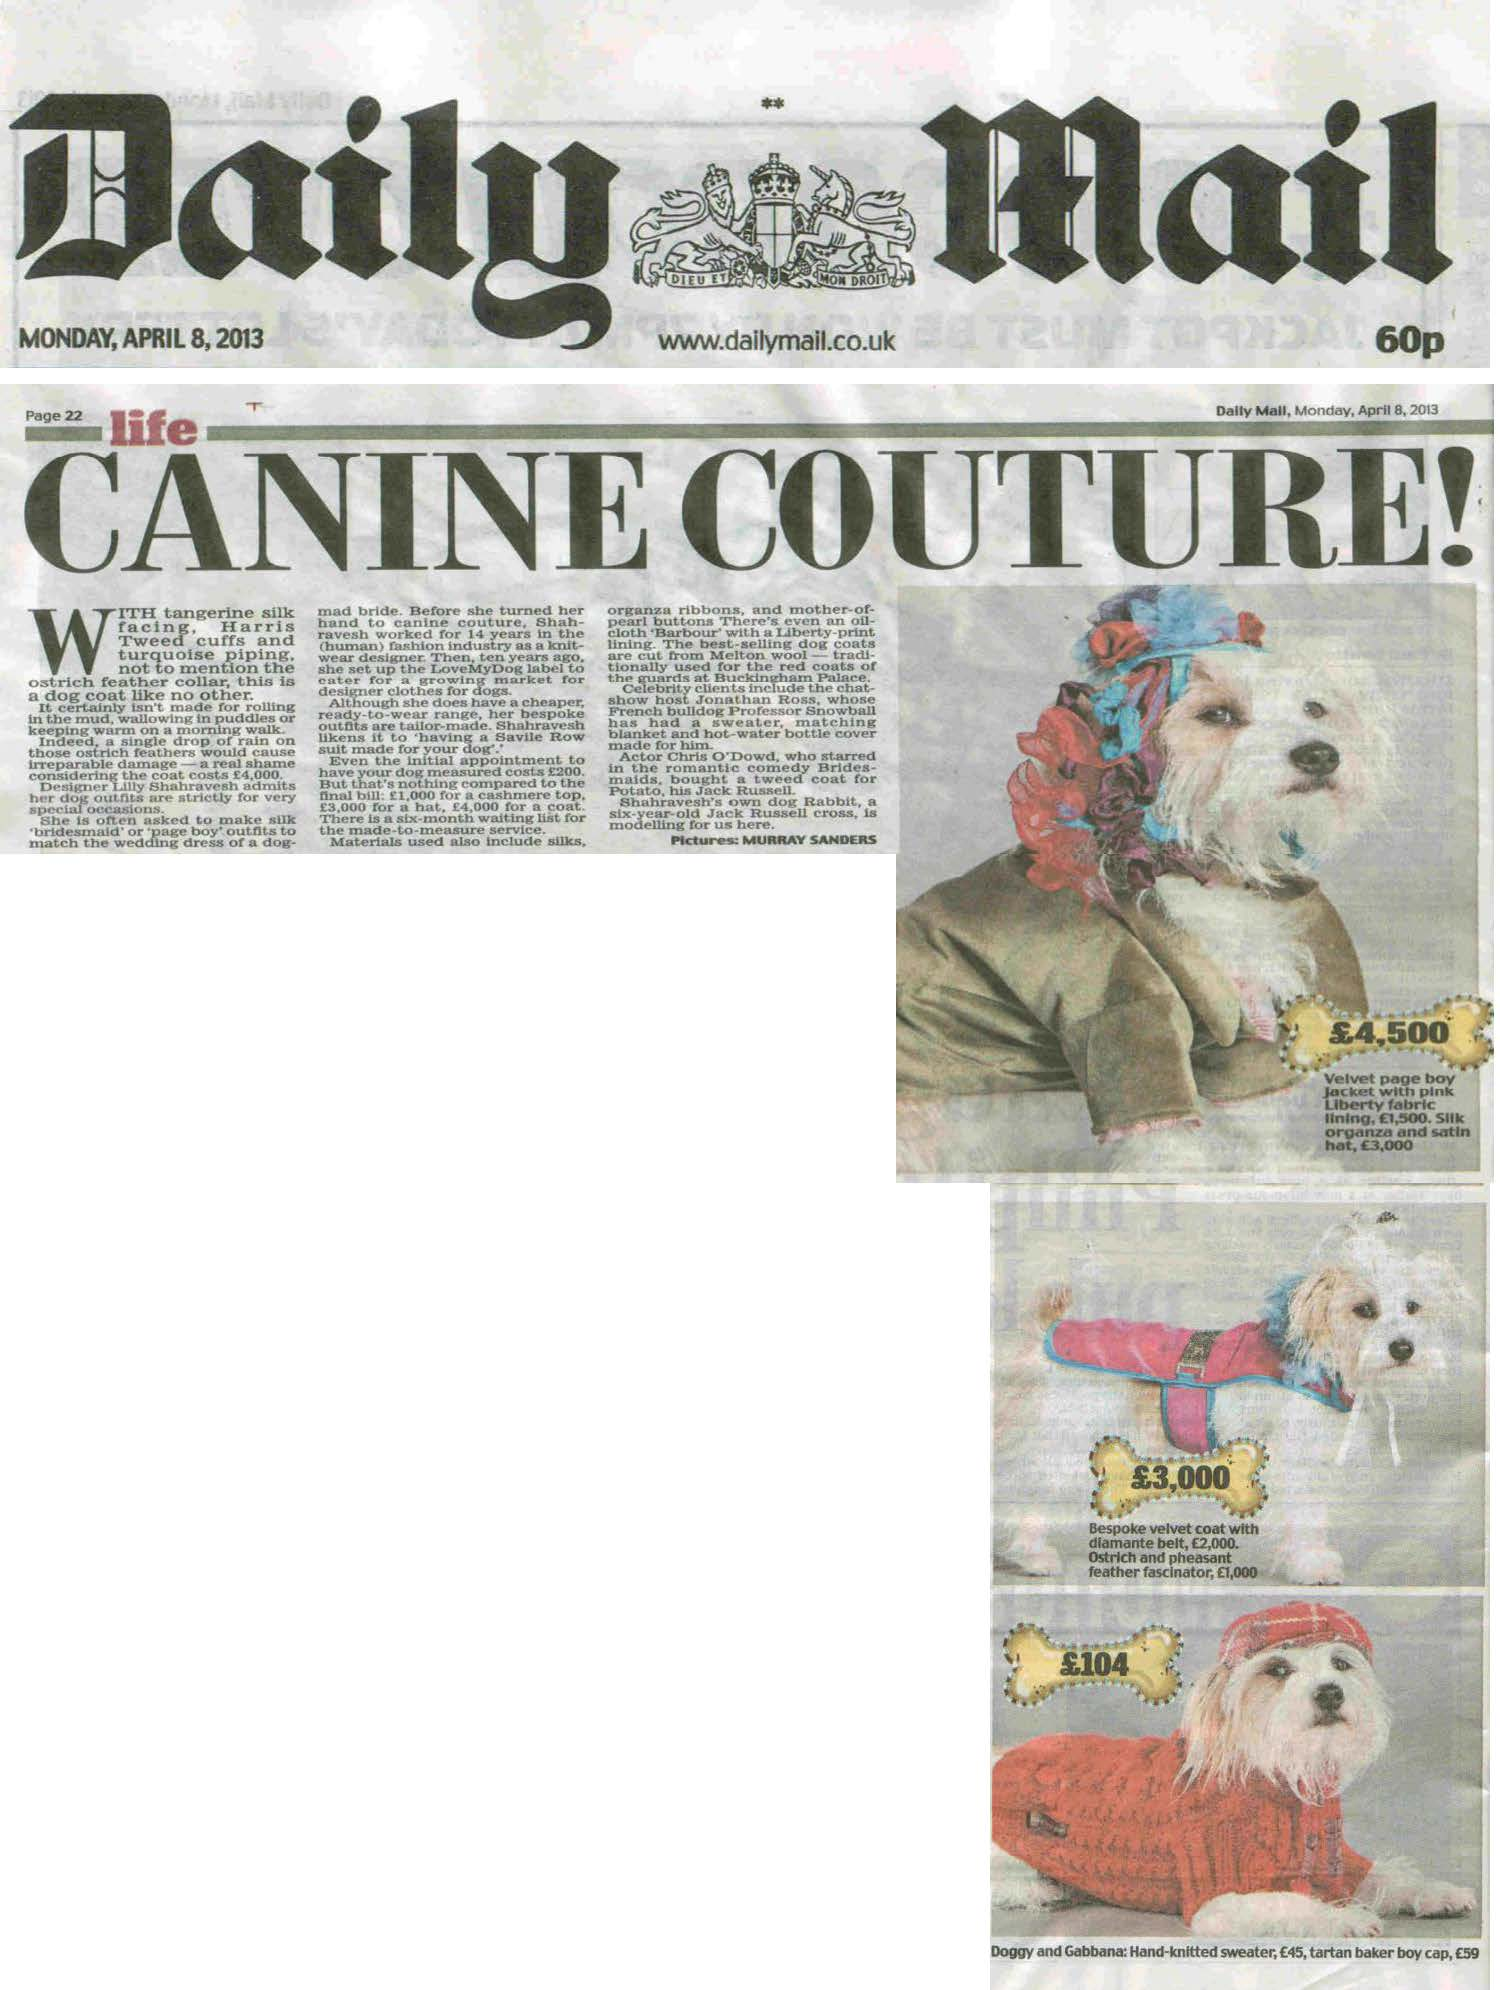 dog, dogs, style, magazine, press, editorial, daily mail, dog, canine, couture